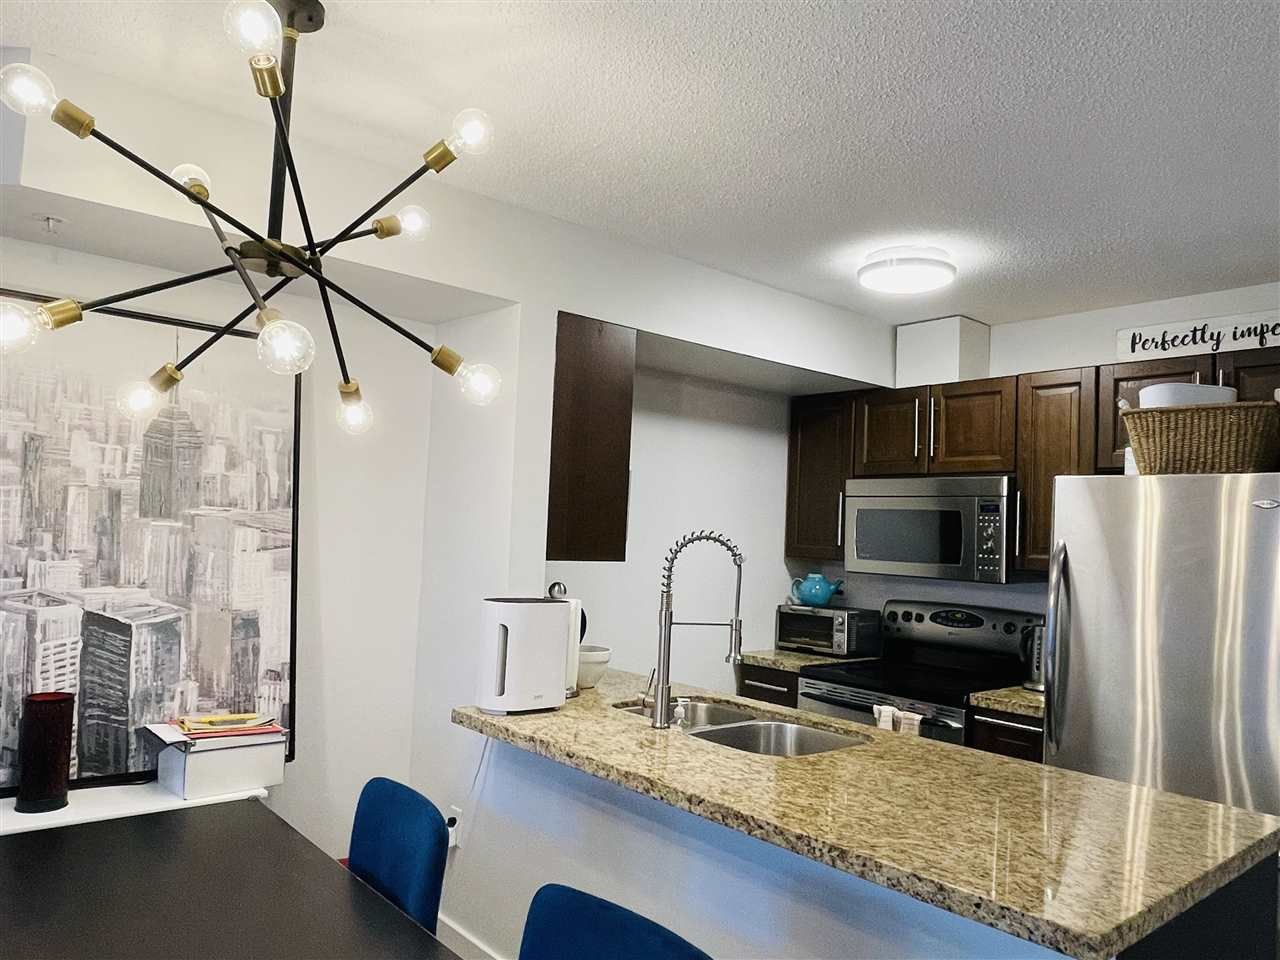 306 939 HOMER STREET - Yaletown Apartment/Condo for sale, 1 Bedroom (R2537664) - #1